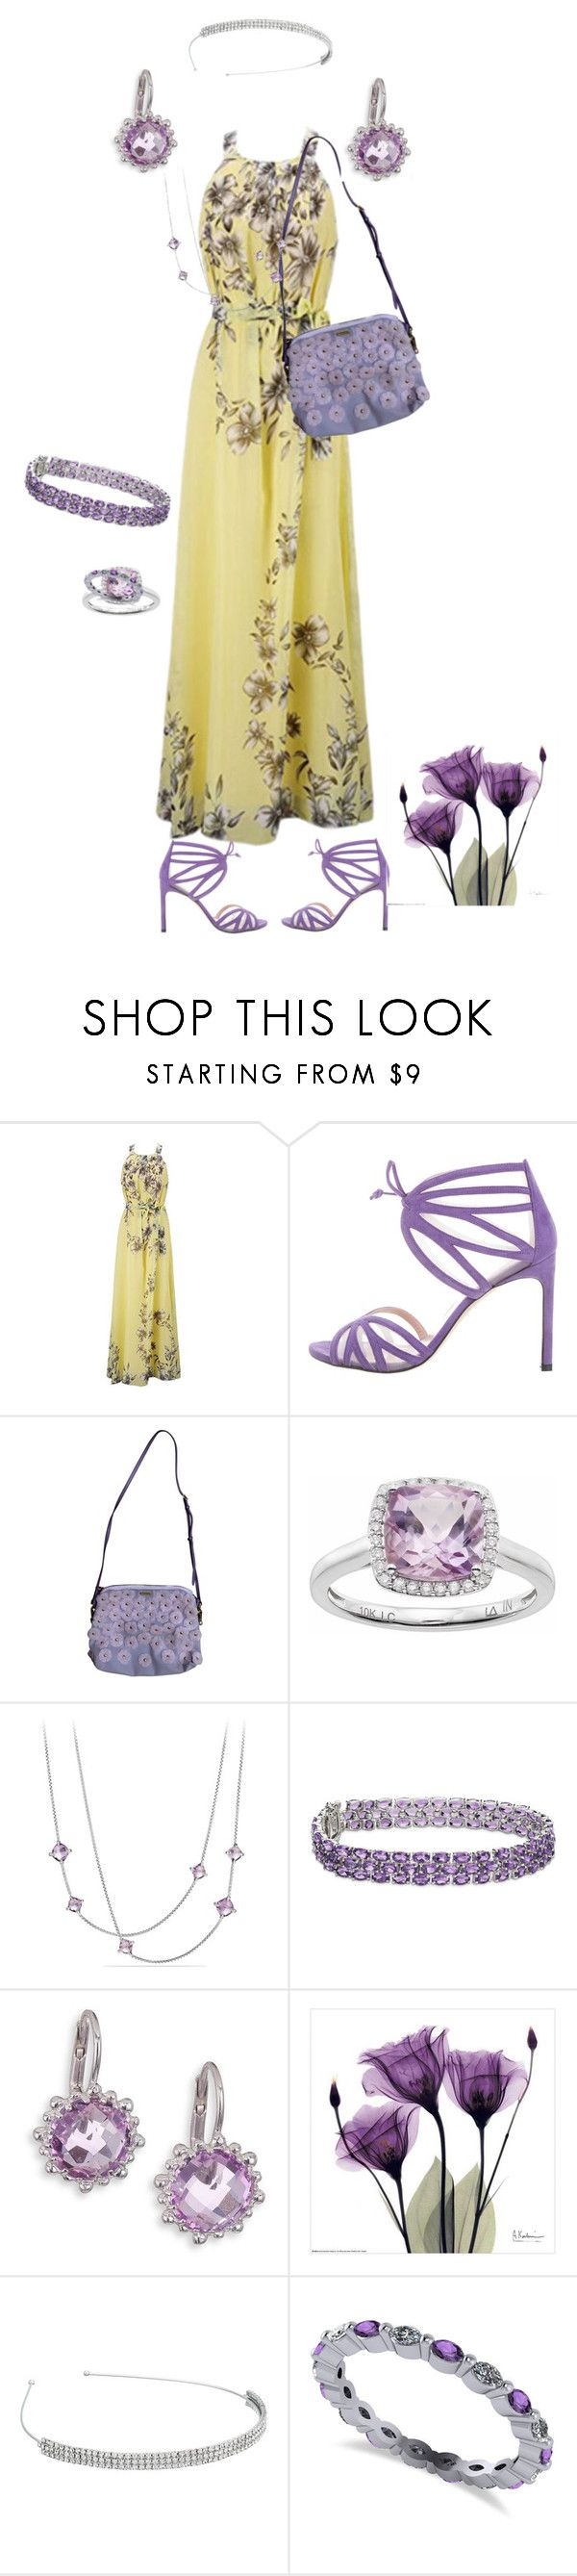 """""""Maxi dress Invisible doll"""" by snowflakeunique ❤ liked on Polyvore featuring Stuart Weitzman, Burberry, LC Lauren Conrad, David Yurman, Blue Nile, Anzie, Nina and Allurez"""